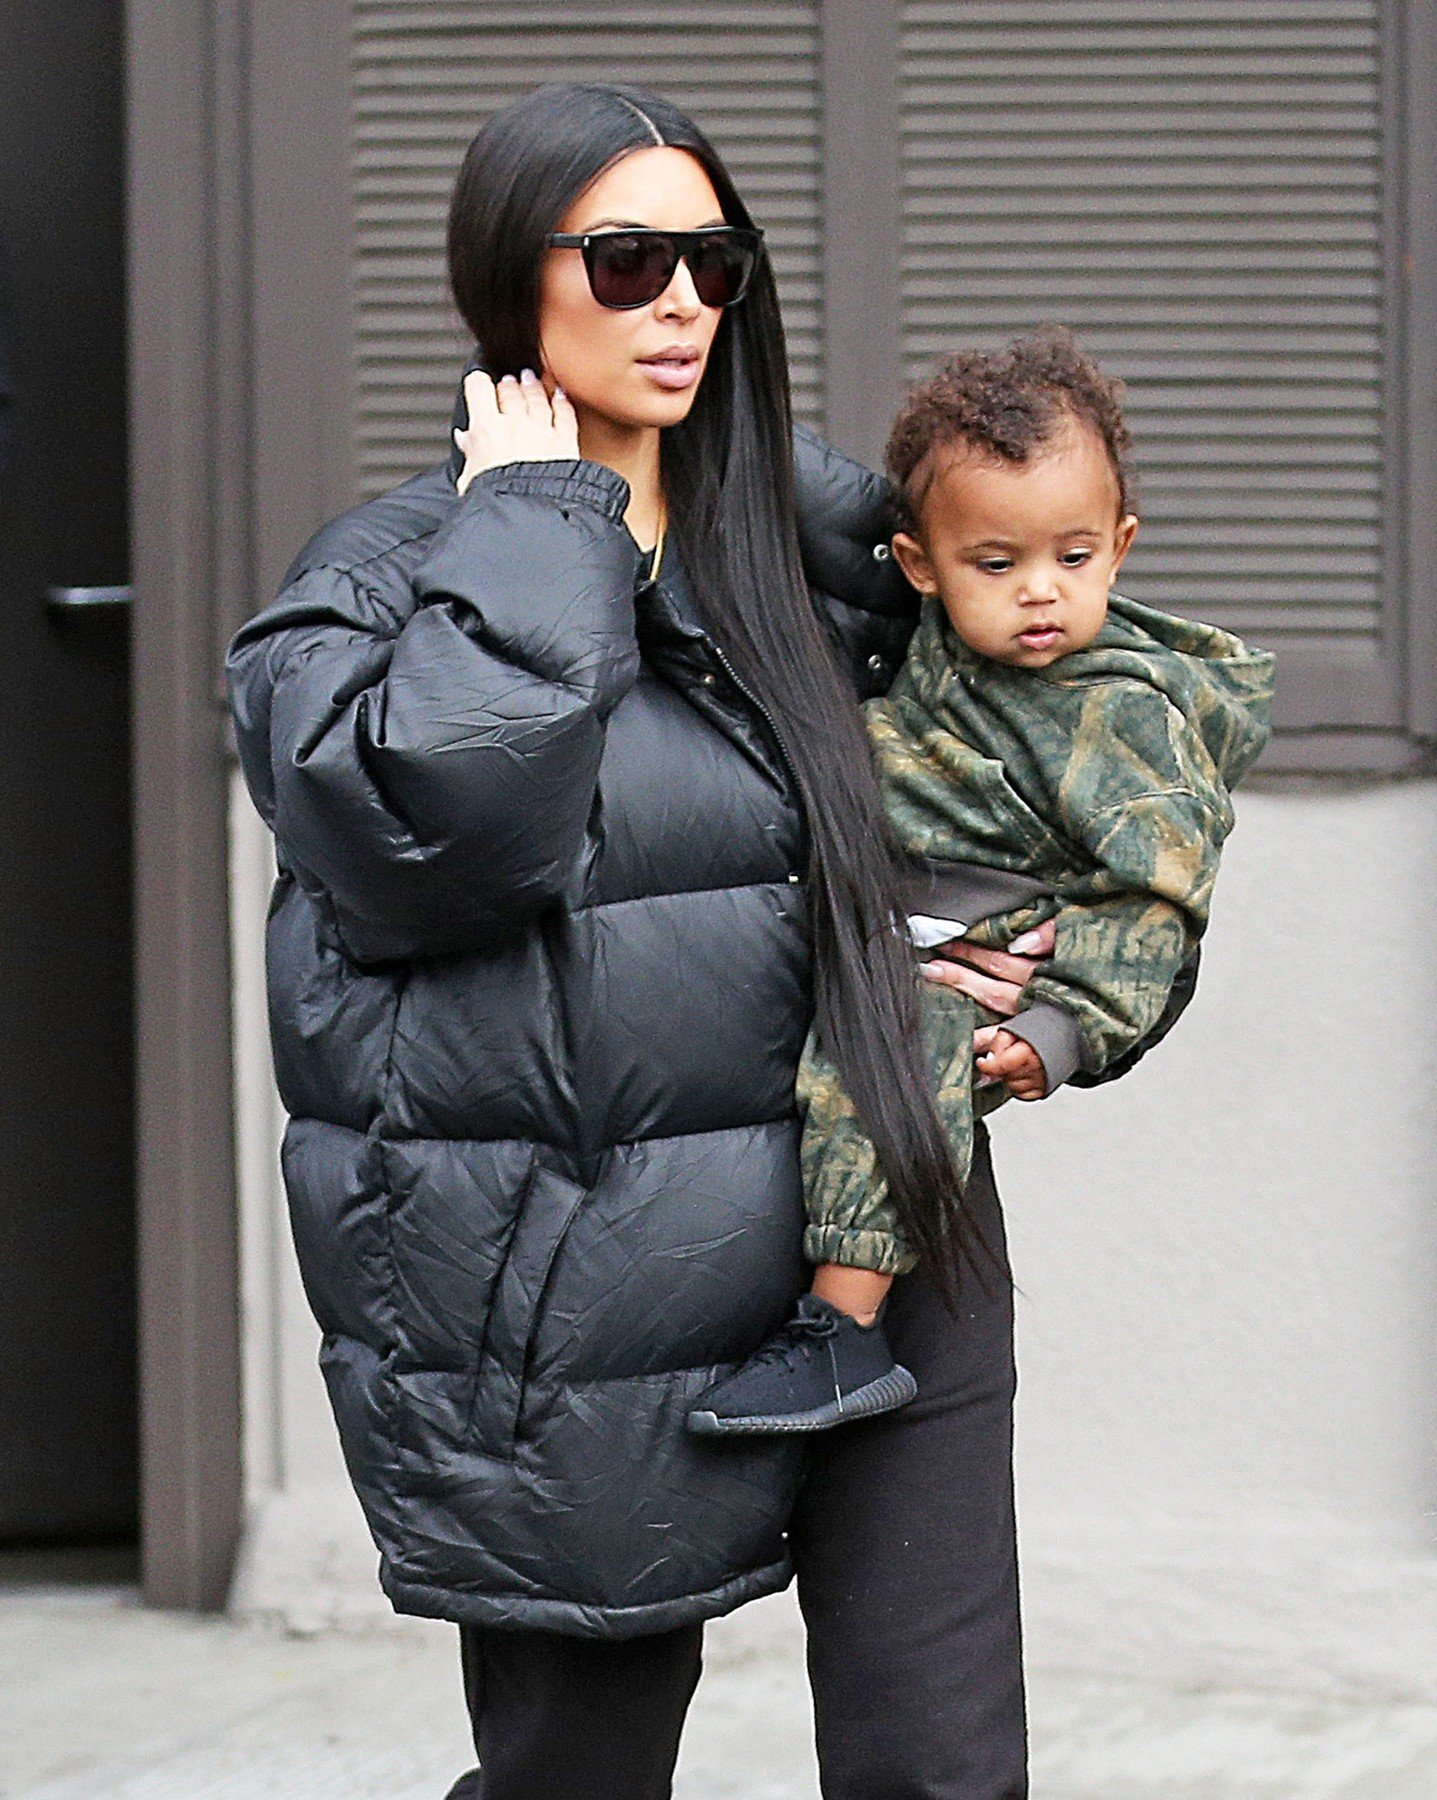 AG_171565 -  - Calabasas, CA - Kim Kardashian is spotted leaving Shirin with Kanye West. The mother of two walks with her daughter, North, and son, Saint. Kim is wearing sweatpants and a tee paired with an oversized puffer jacket and sneakers. Nori is wearing a green Calabasas ensemble and her hair worn in space buns. Saint looks adorable wearing all camo. Both of the kids are wearing Yeezy sneakers while Kim sports Vans. Kourtney Kardashian and her daughter Penelope leave dinner together. The mother daughter duo look cool both wearing black pants, Yeezy sneakers, and leather moto jackets.  Pictured: Kourtney Kardashian, Kim Kardashian, Kanye West  19 FEBRUARY 2017, Image: 321514821, License: Rights-managed, Restrictions: , Model Release: no, Credit line: Profimedia, AKM-GSI